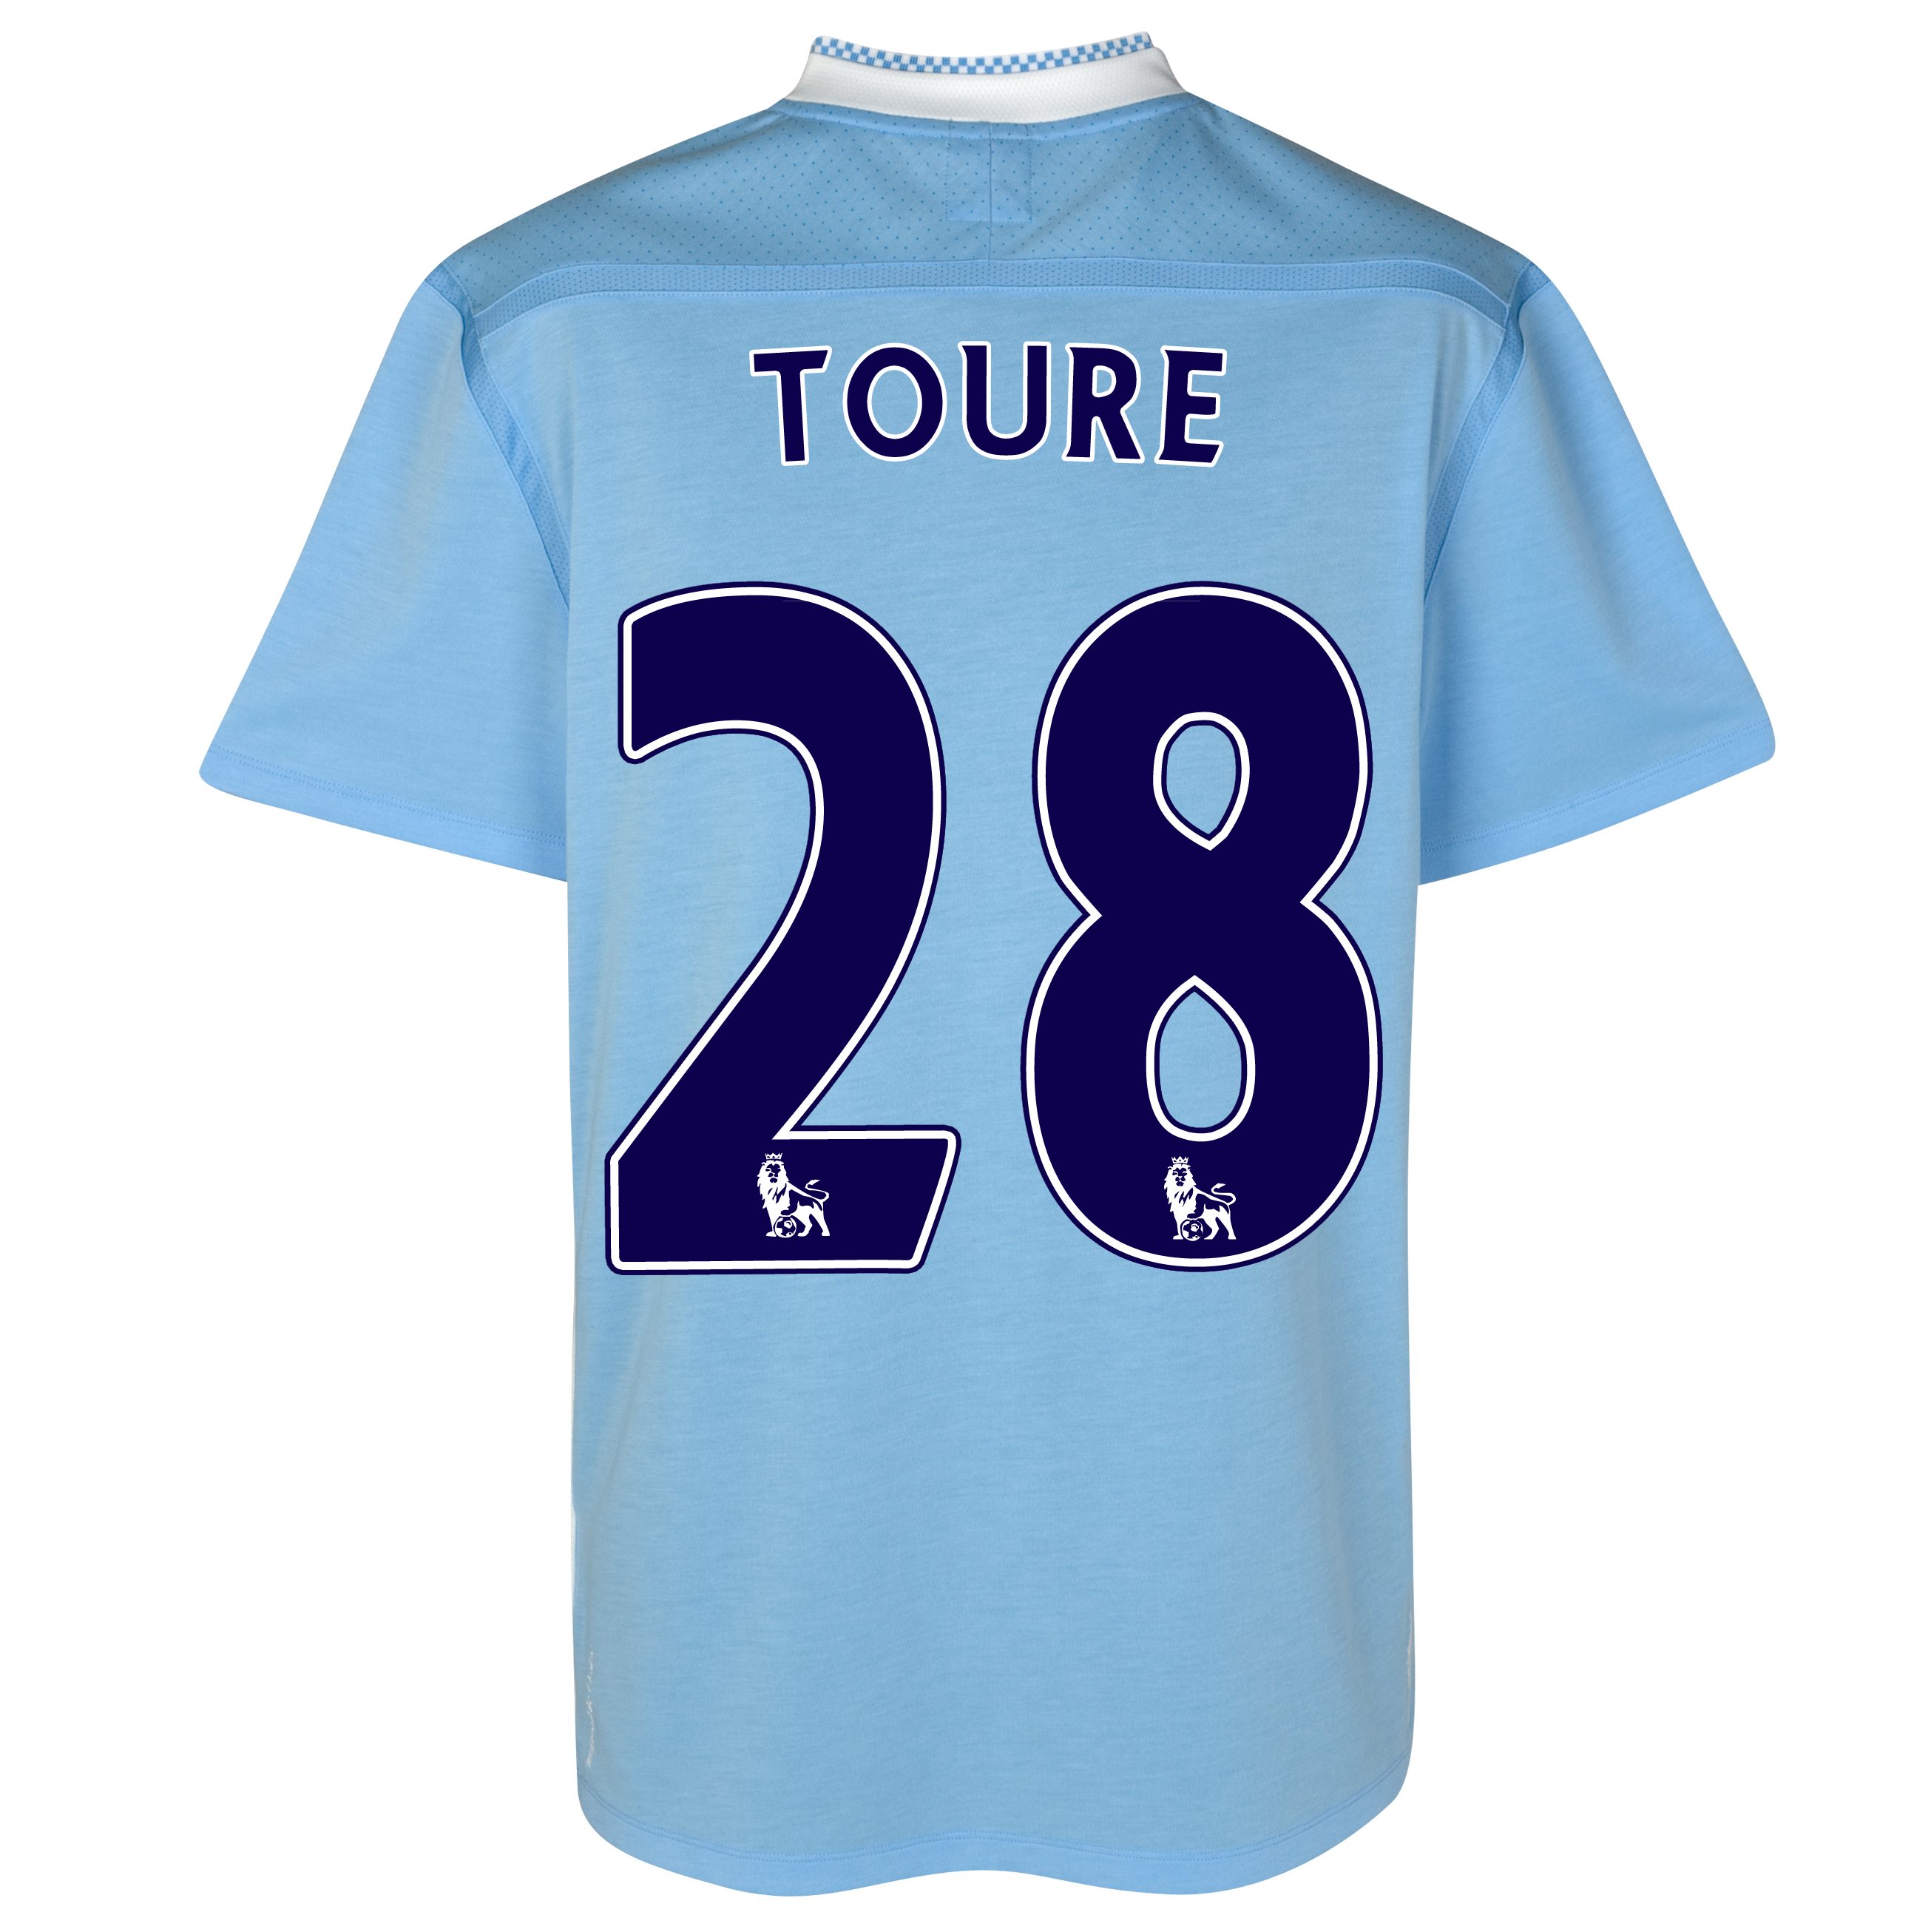 Manchester City Home Shirt 2011/12 with Toure 28 printing